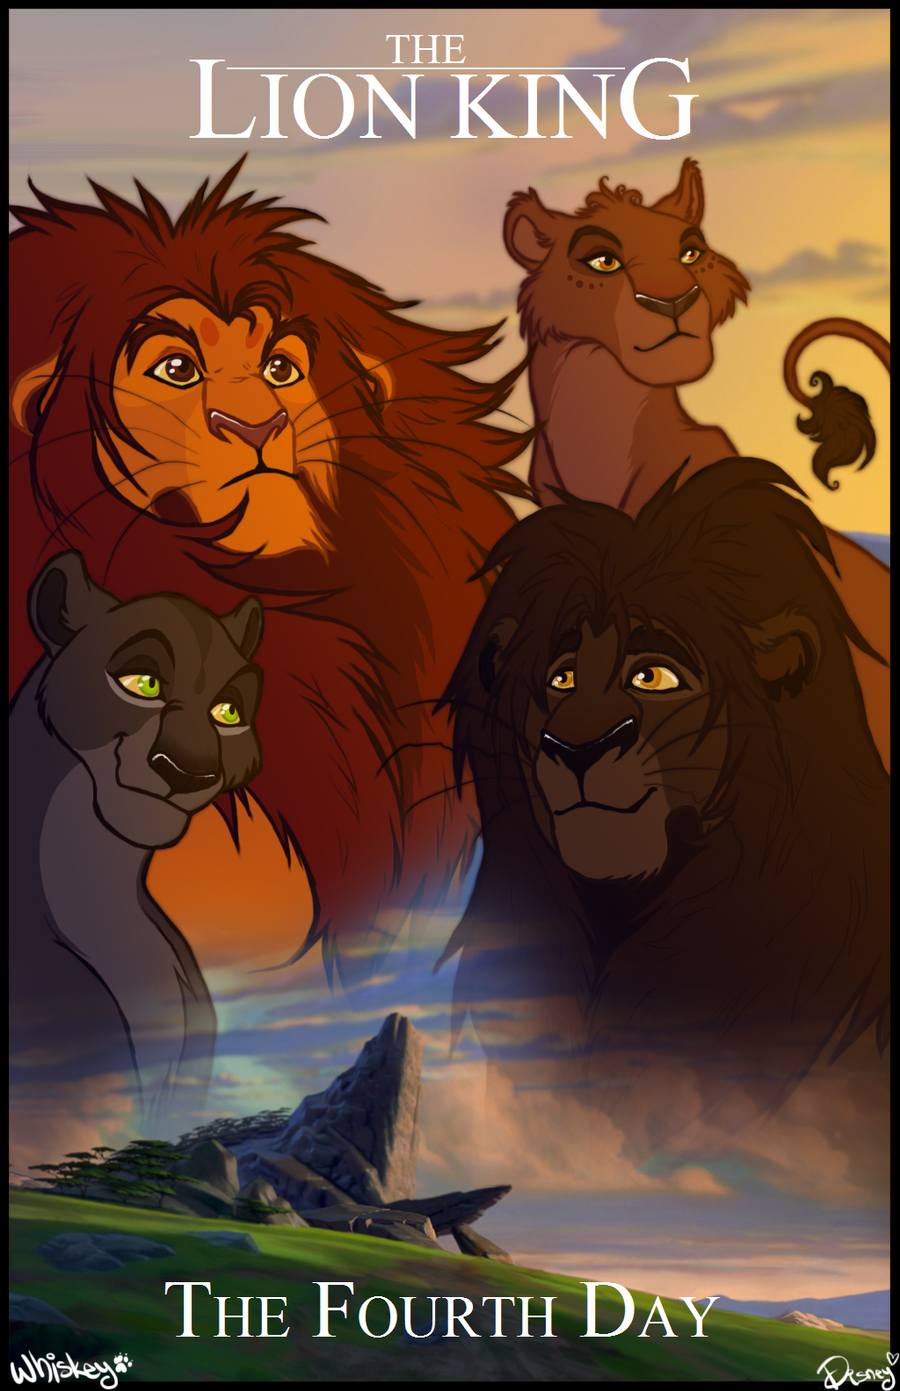 The Lion King ~ The Fourth Day by ArmanaTLK on DeviantArt